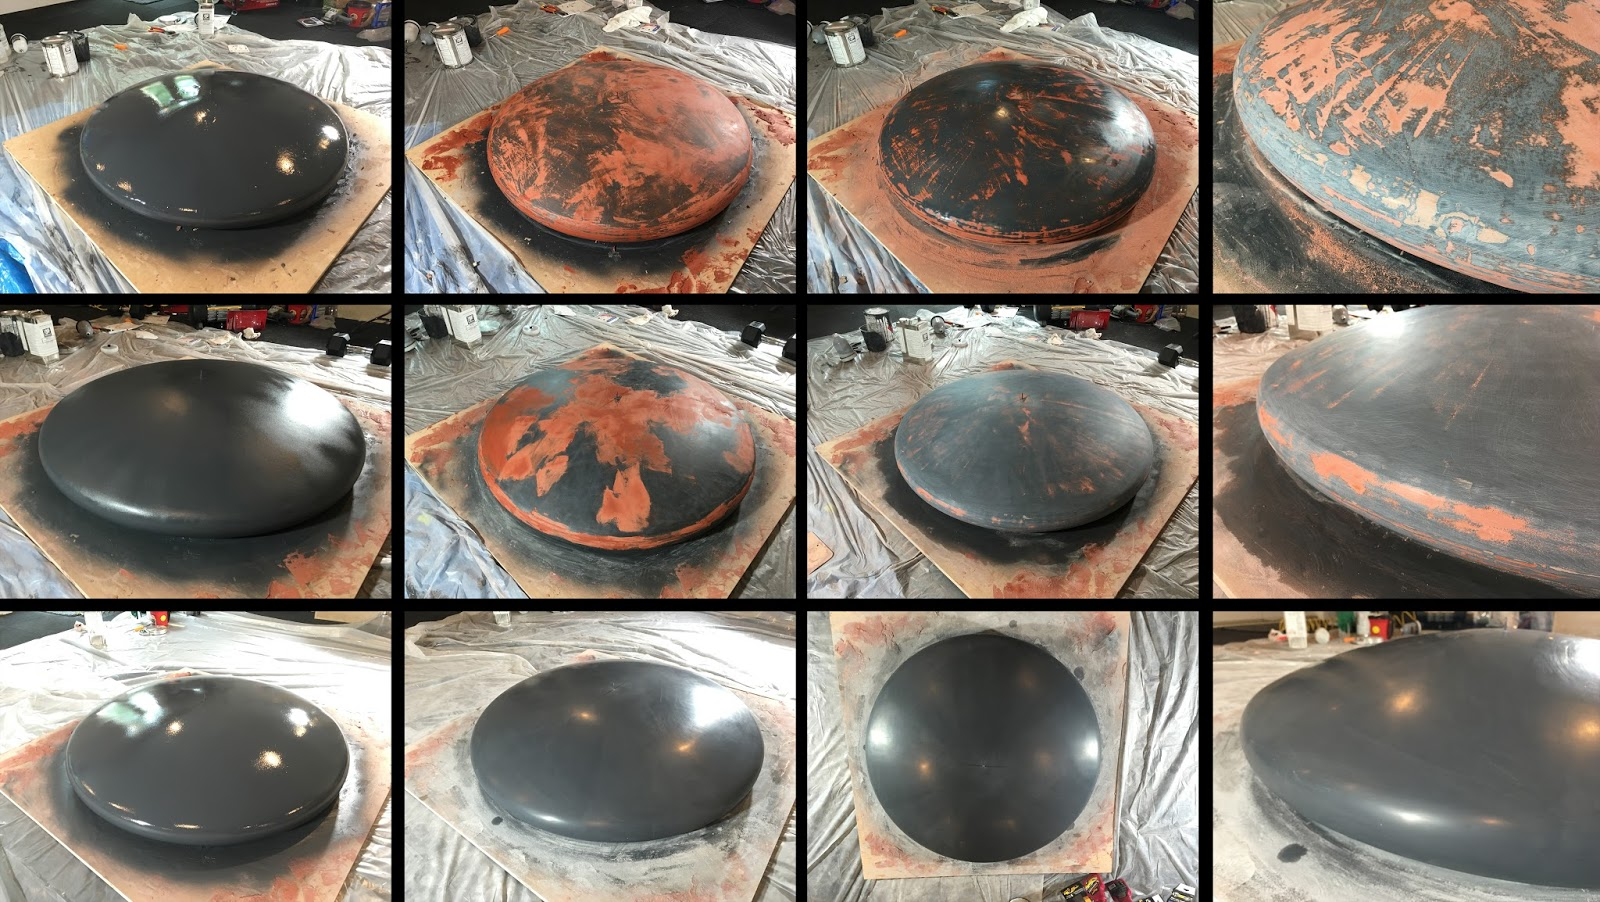 From the top, each row shows successive layers of gel coat with filler (reddish color) and the result after sanding to a fine finish.